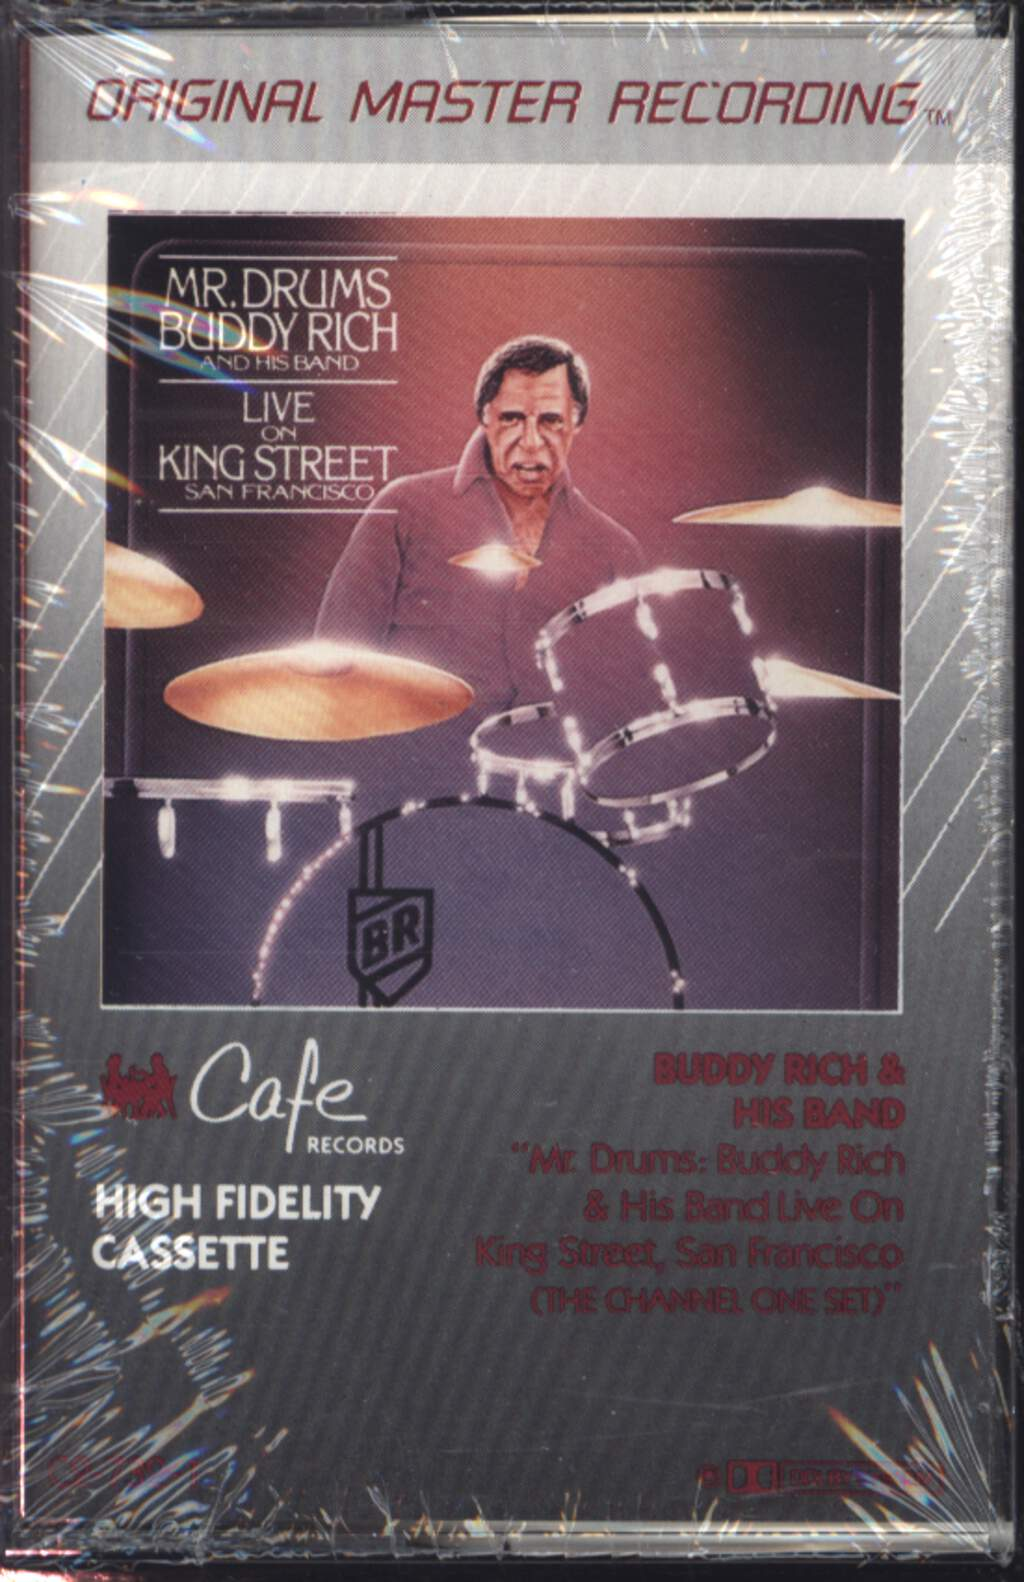 Buddy Rich: Mr Drums: Buddy Rich & His Band Live On King Street, Compact Cassette